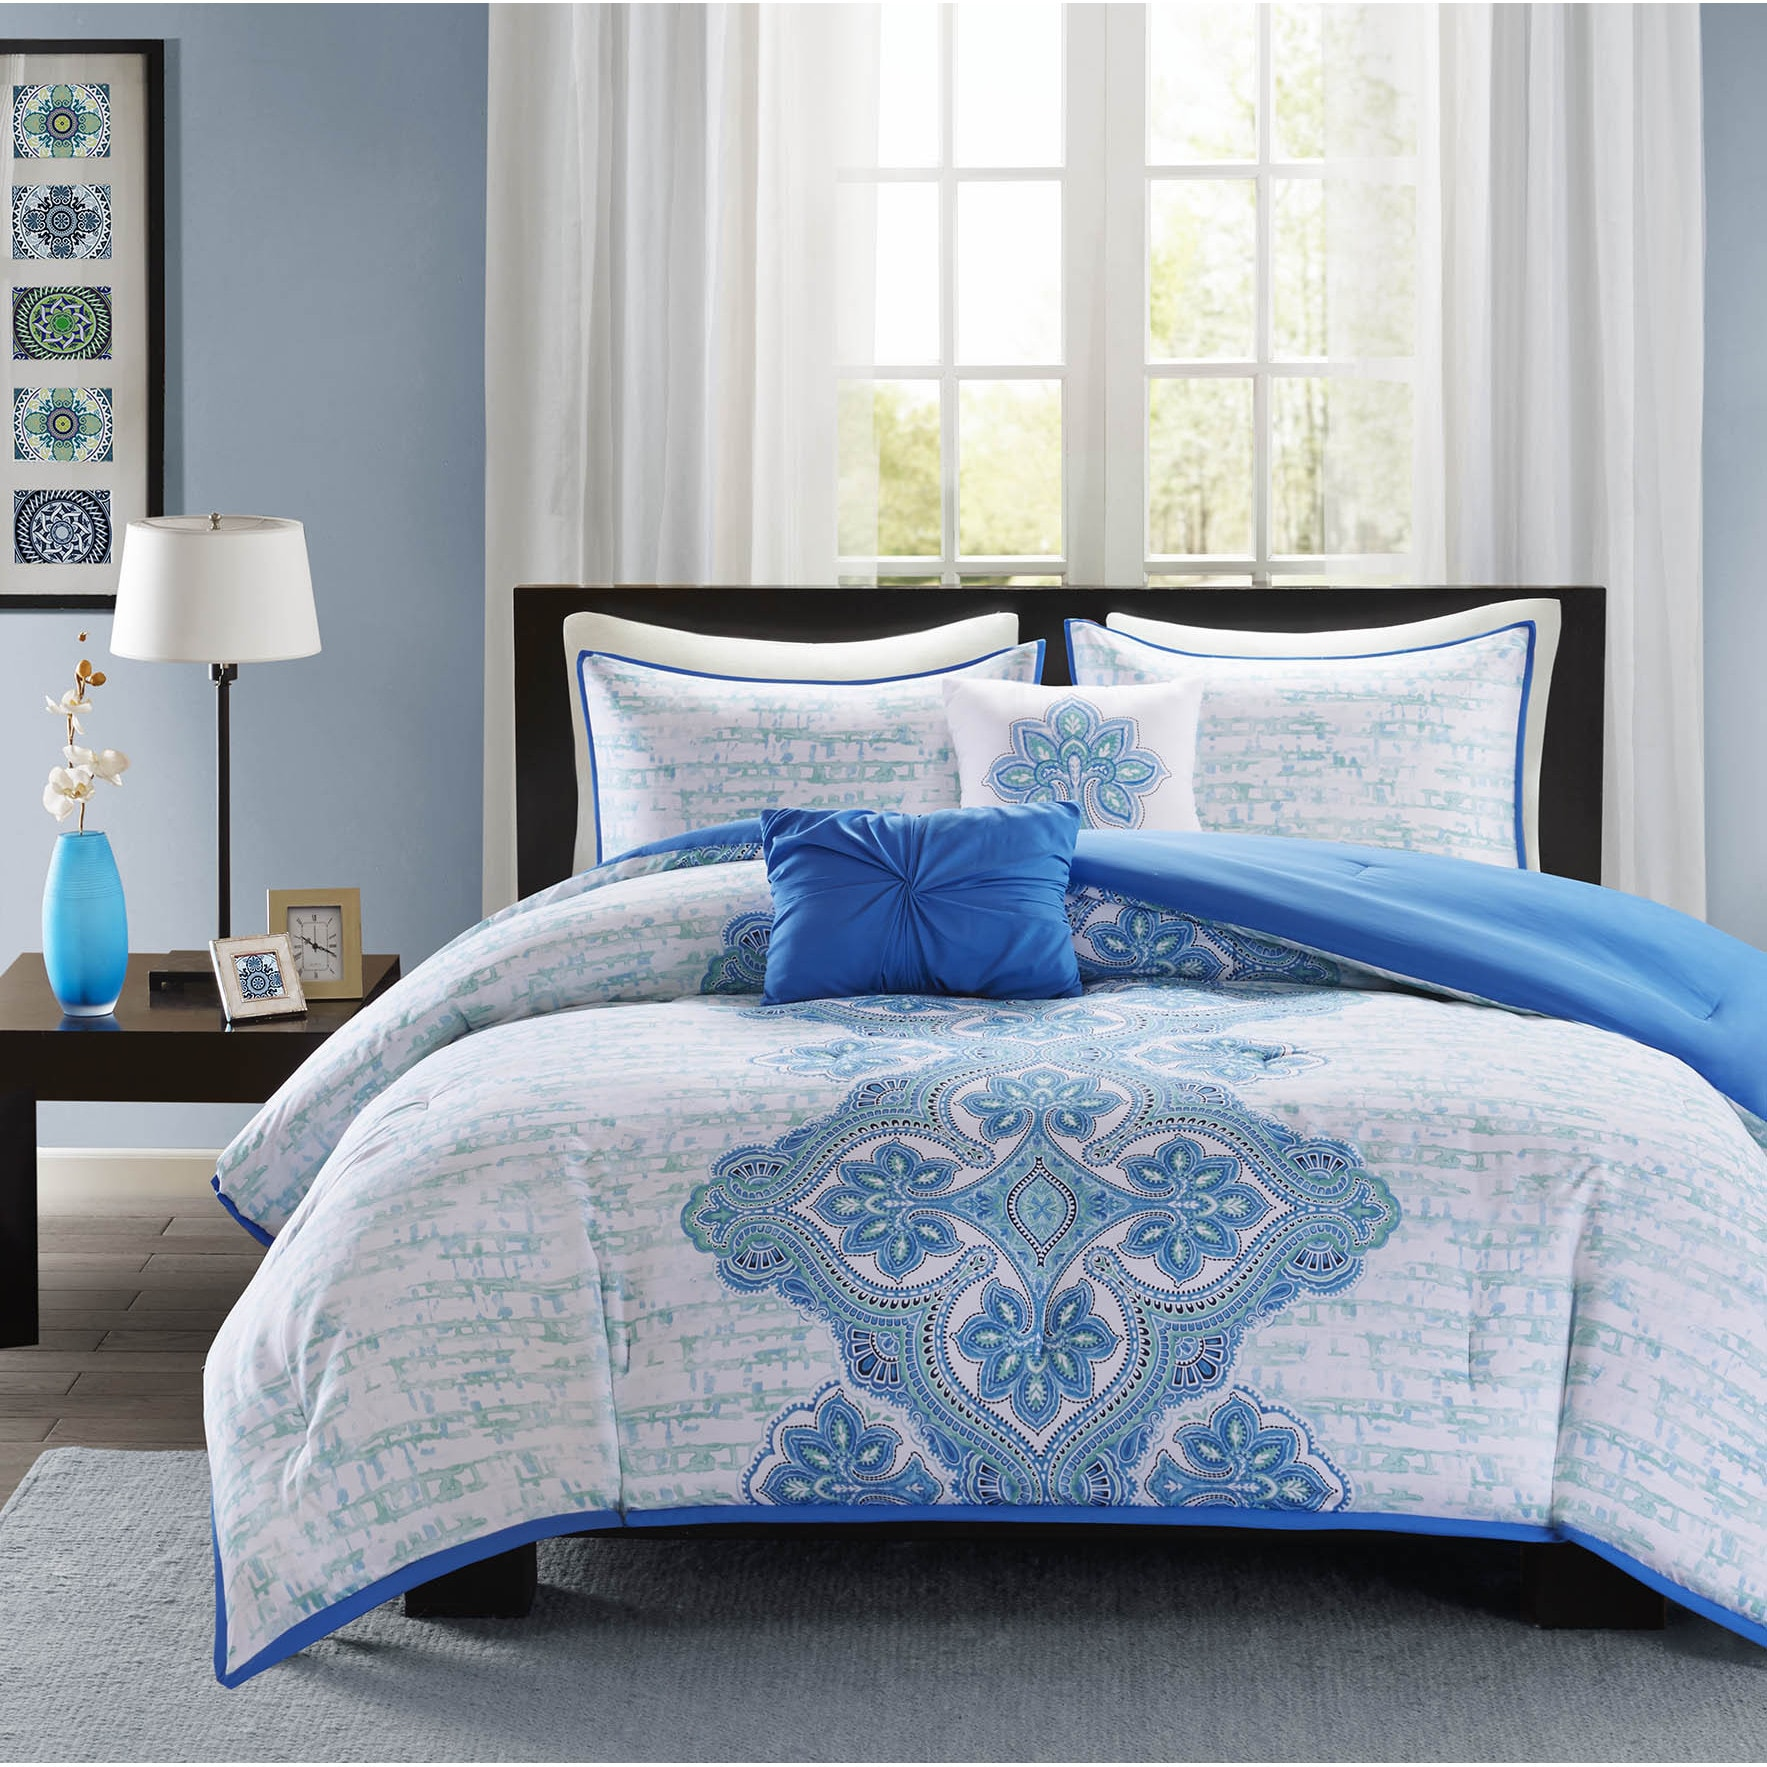 set flocking brown silky damask floral square com ip pc walmart queen comforter satin poly blue